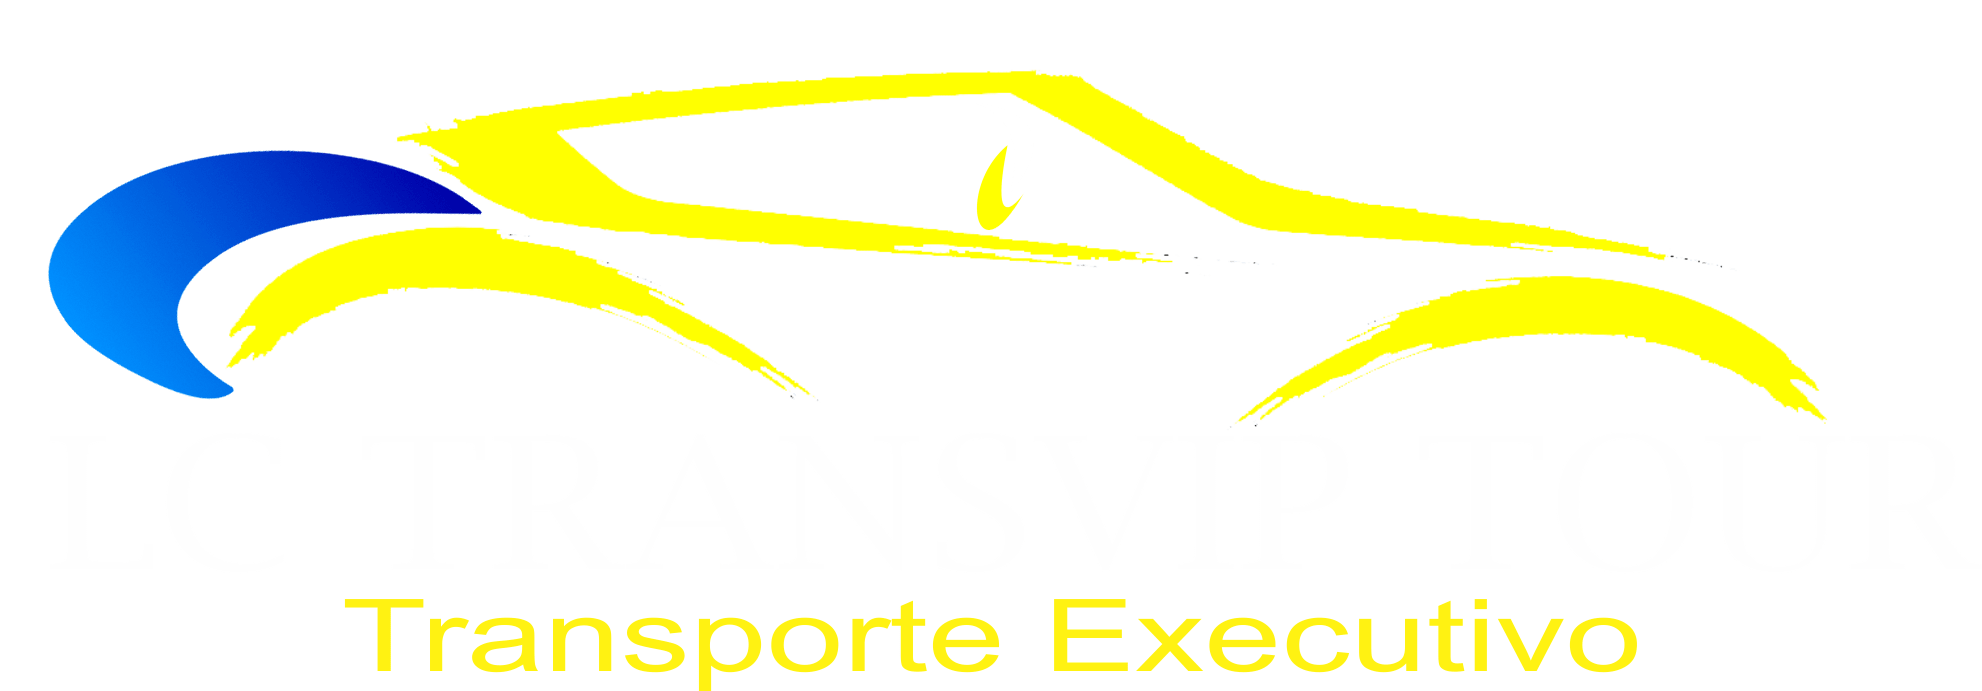 Transfer Executivo no Ipiranga,Empresa de Transfer Executivo no Ipiranga,Transfer Executivo no Ipiranga Urgente,Transfer Executivo no Ipiranga em São Paulo,Transfer Executivo no Ipiranga SP,Orçamento de Transfer Executivo no Ipiranga,LC Transvip Tour